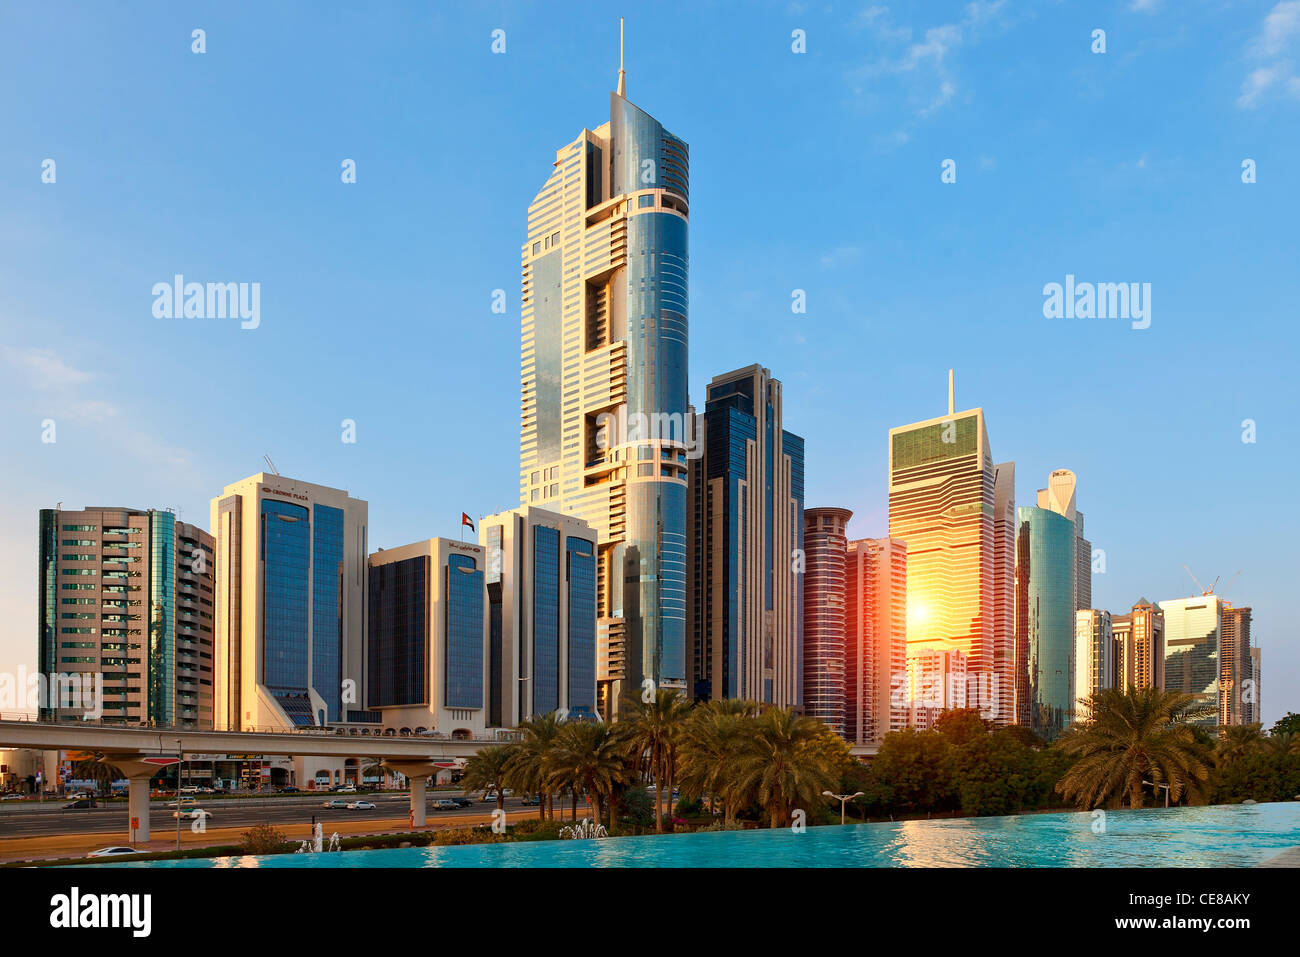 Dubai, Skyscrapers along Sheikh Zayed Road - Stock Image